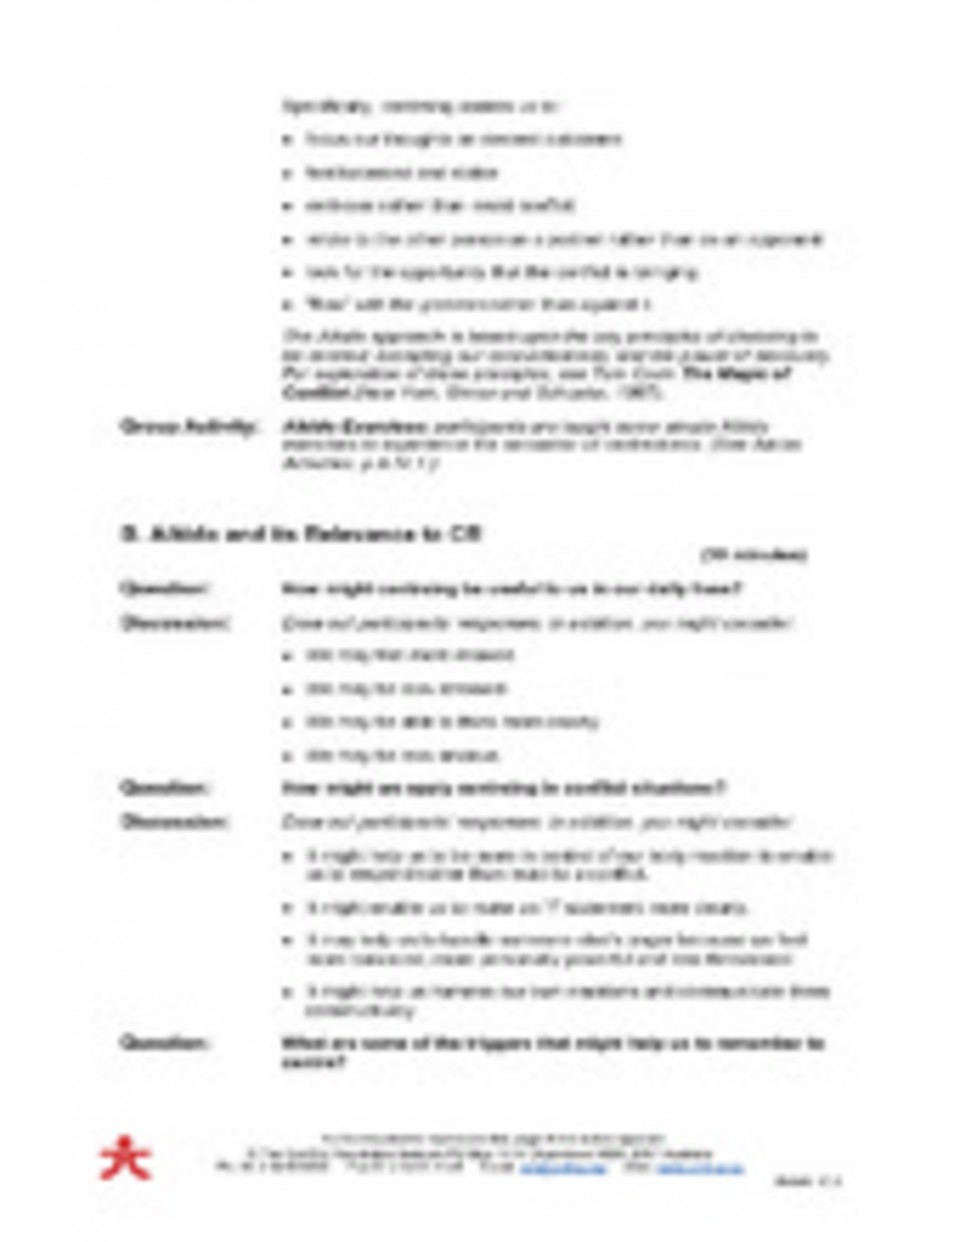 011 Conflict20resolution20class20notes 28058935 Aikido Conflict Resolution Material Part 17page2 Essay Example Formidable Trifles Topics Feminism 960